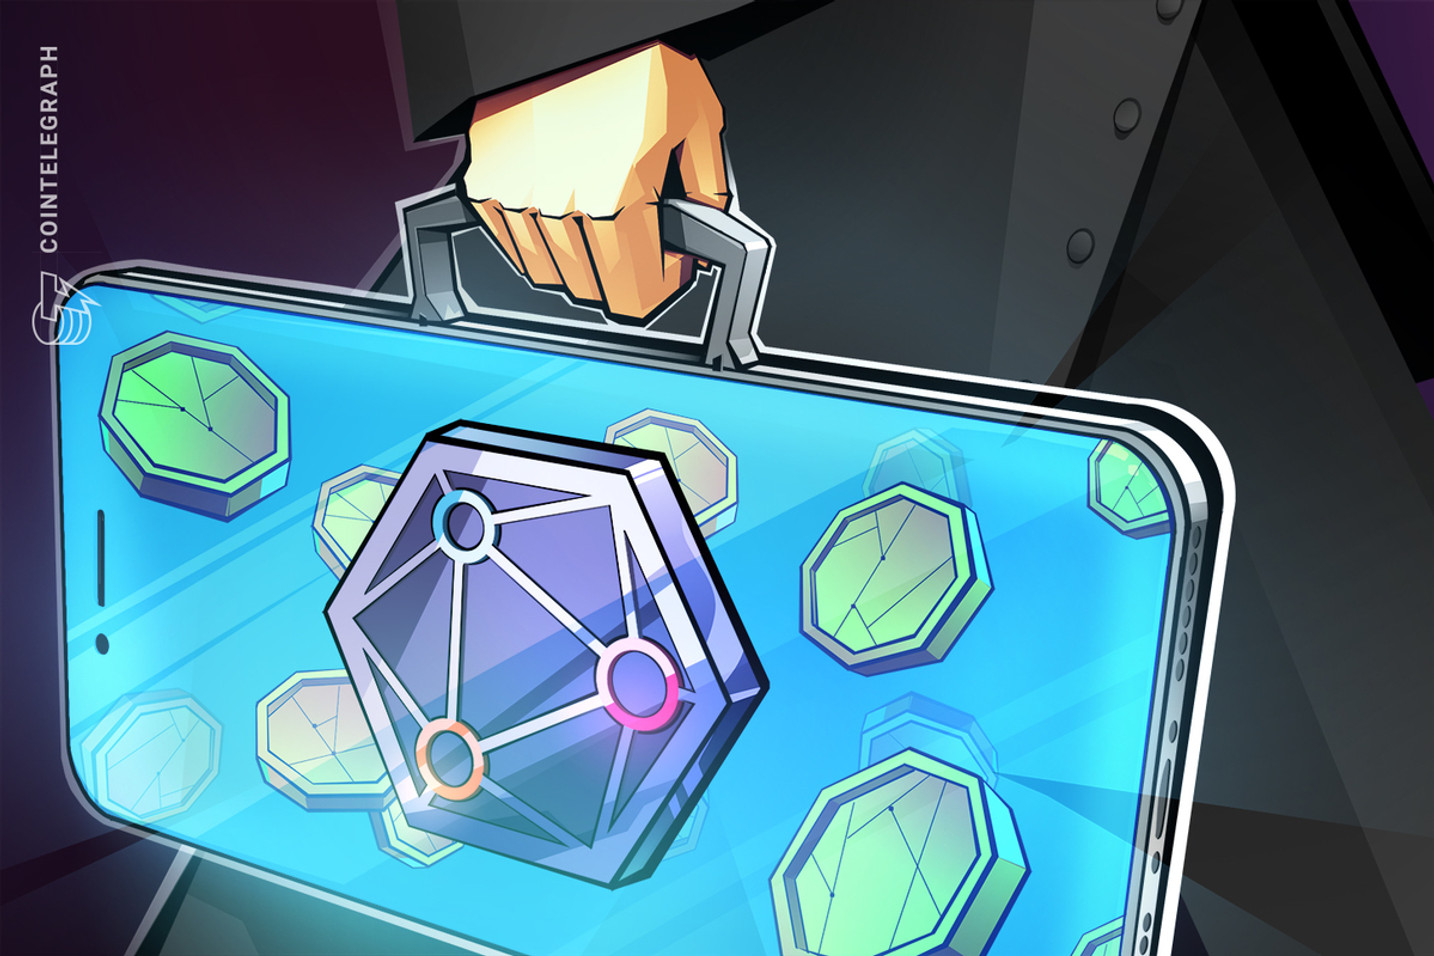 This blockchain network lets users 'geomine' crypto rewards from their smartphones